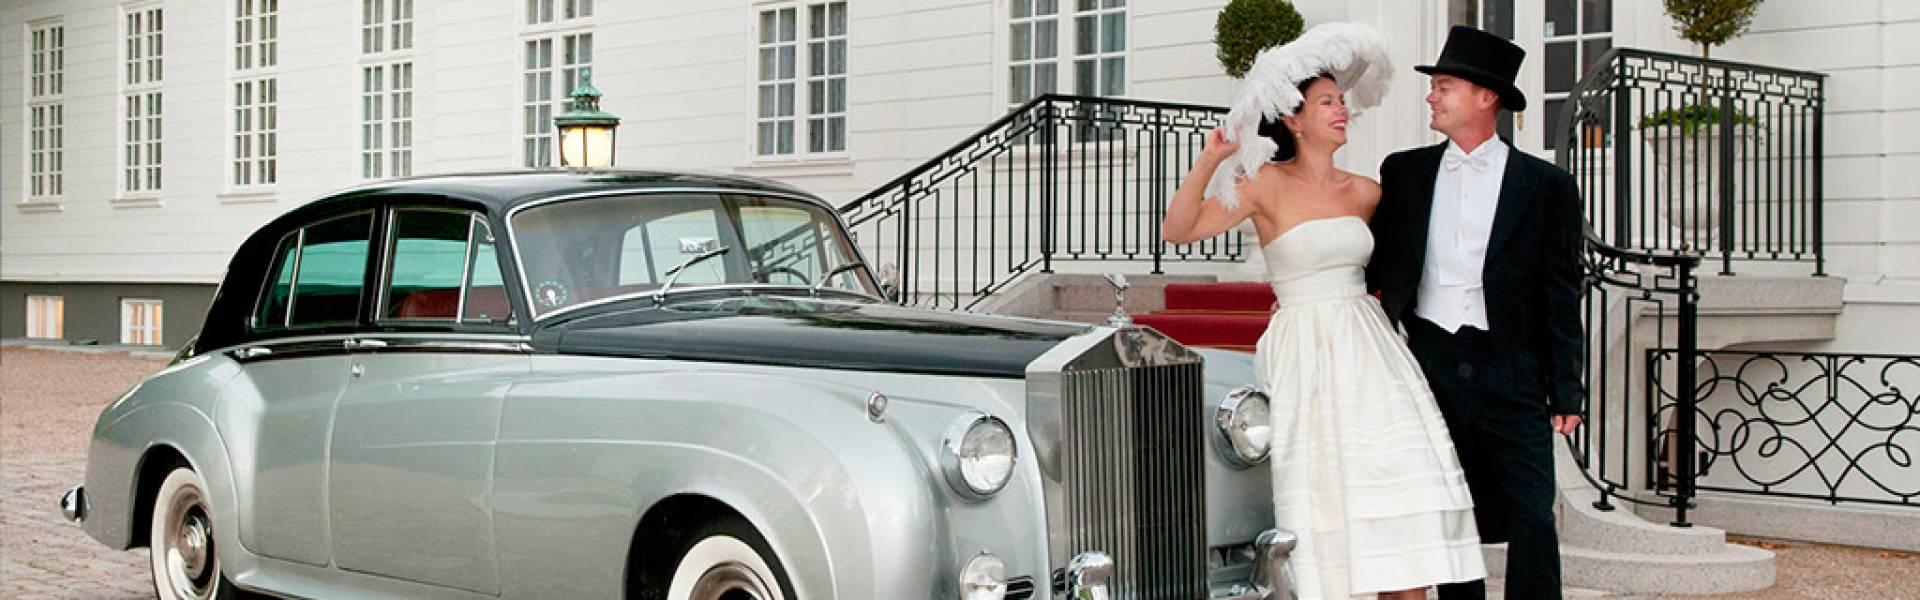 Wedding Cars Hire Yorkshire Classic Romantic Vintage Bookaclassic